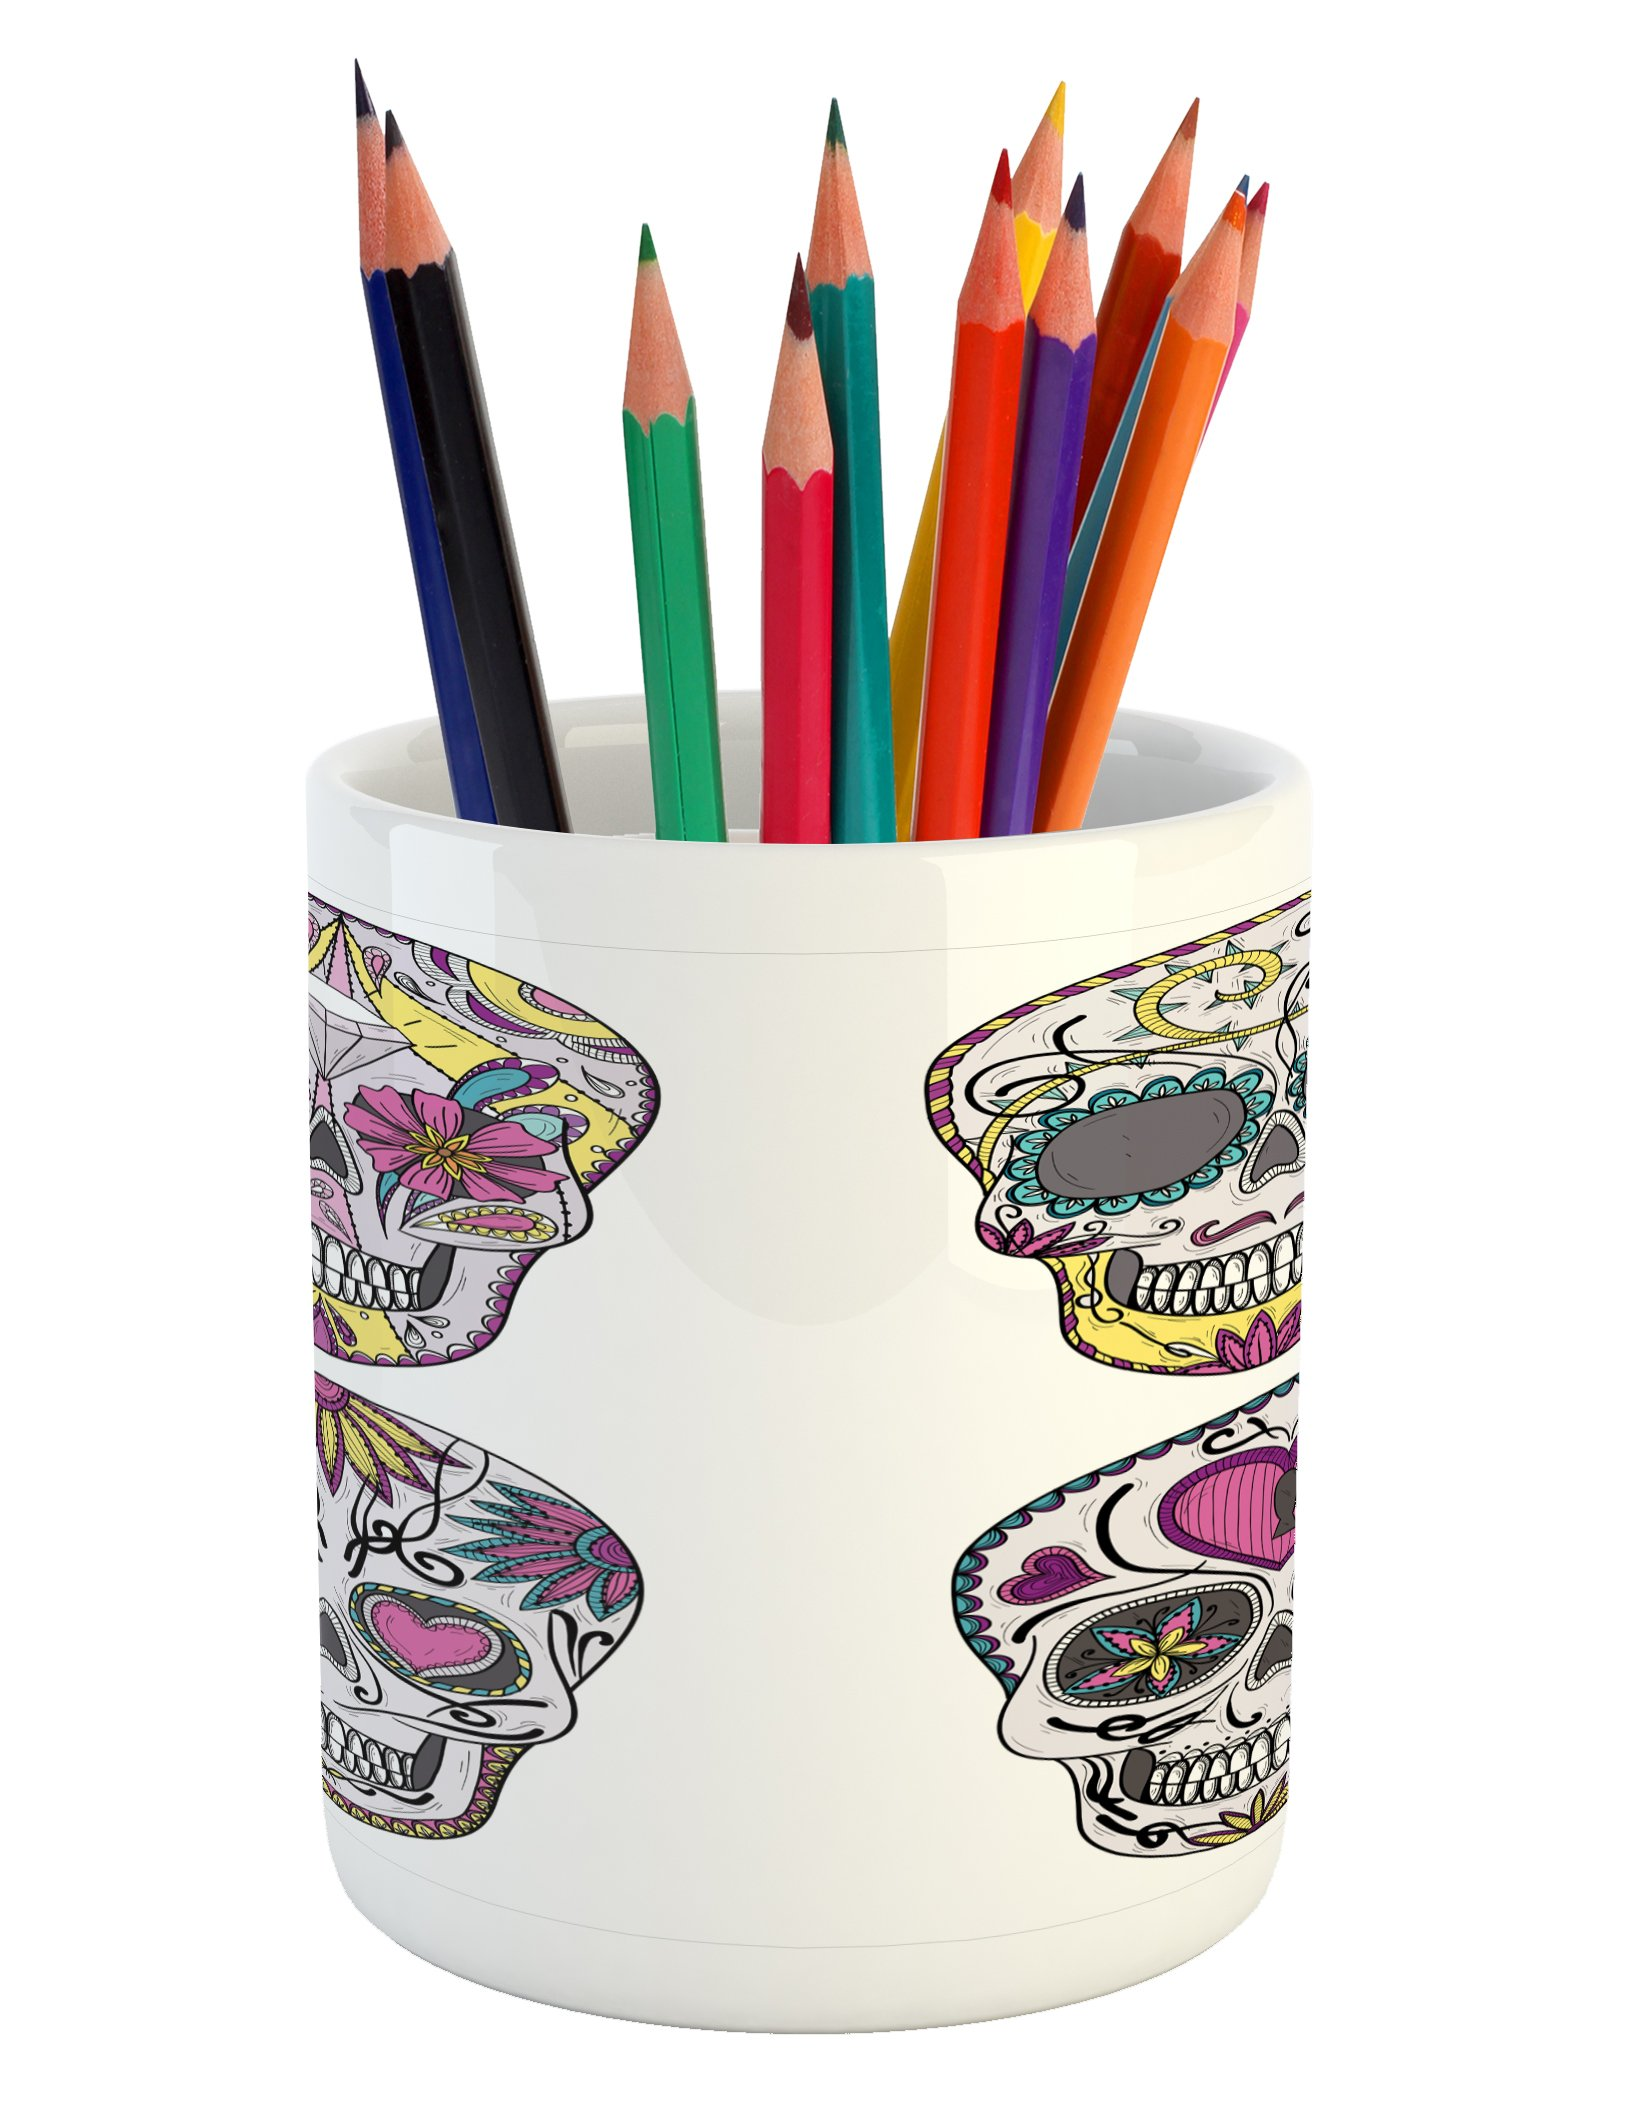 Ambesonne Skull Pencil Pen Holder, Colorful Ornate Mexican Sugar Skull Set with Flower and Heart Pattern Calavera Humor, Printed Ceramic Pencil Pen Holder for Desk Office Accessory, Multicolor